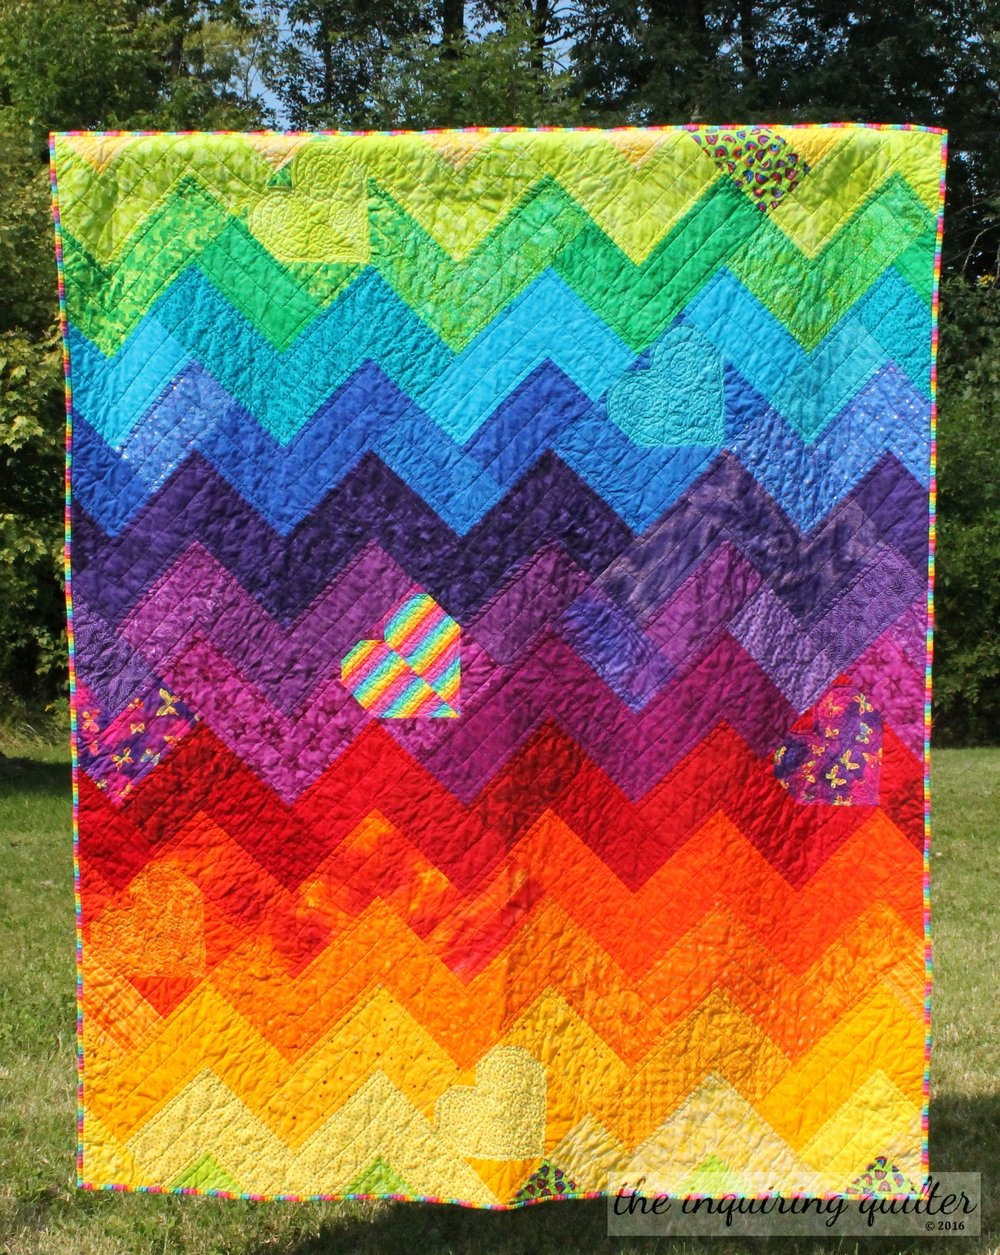 Charity is an integral part of Thanksgiving here, with the focus on feeding the hungry. Here's a quilt I made for charity.